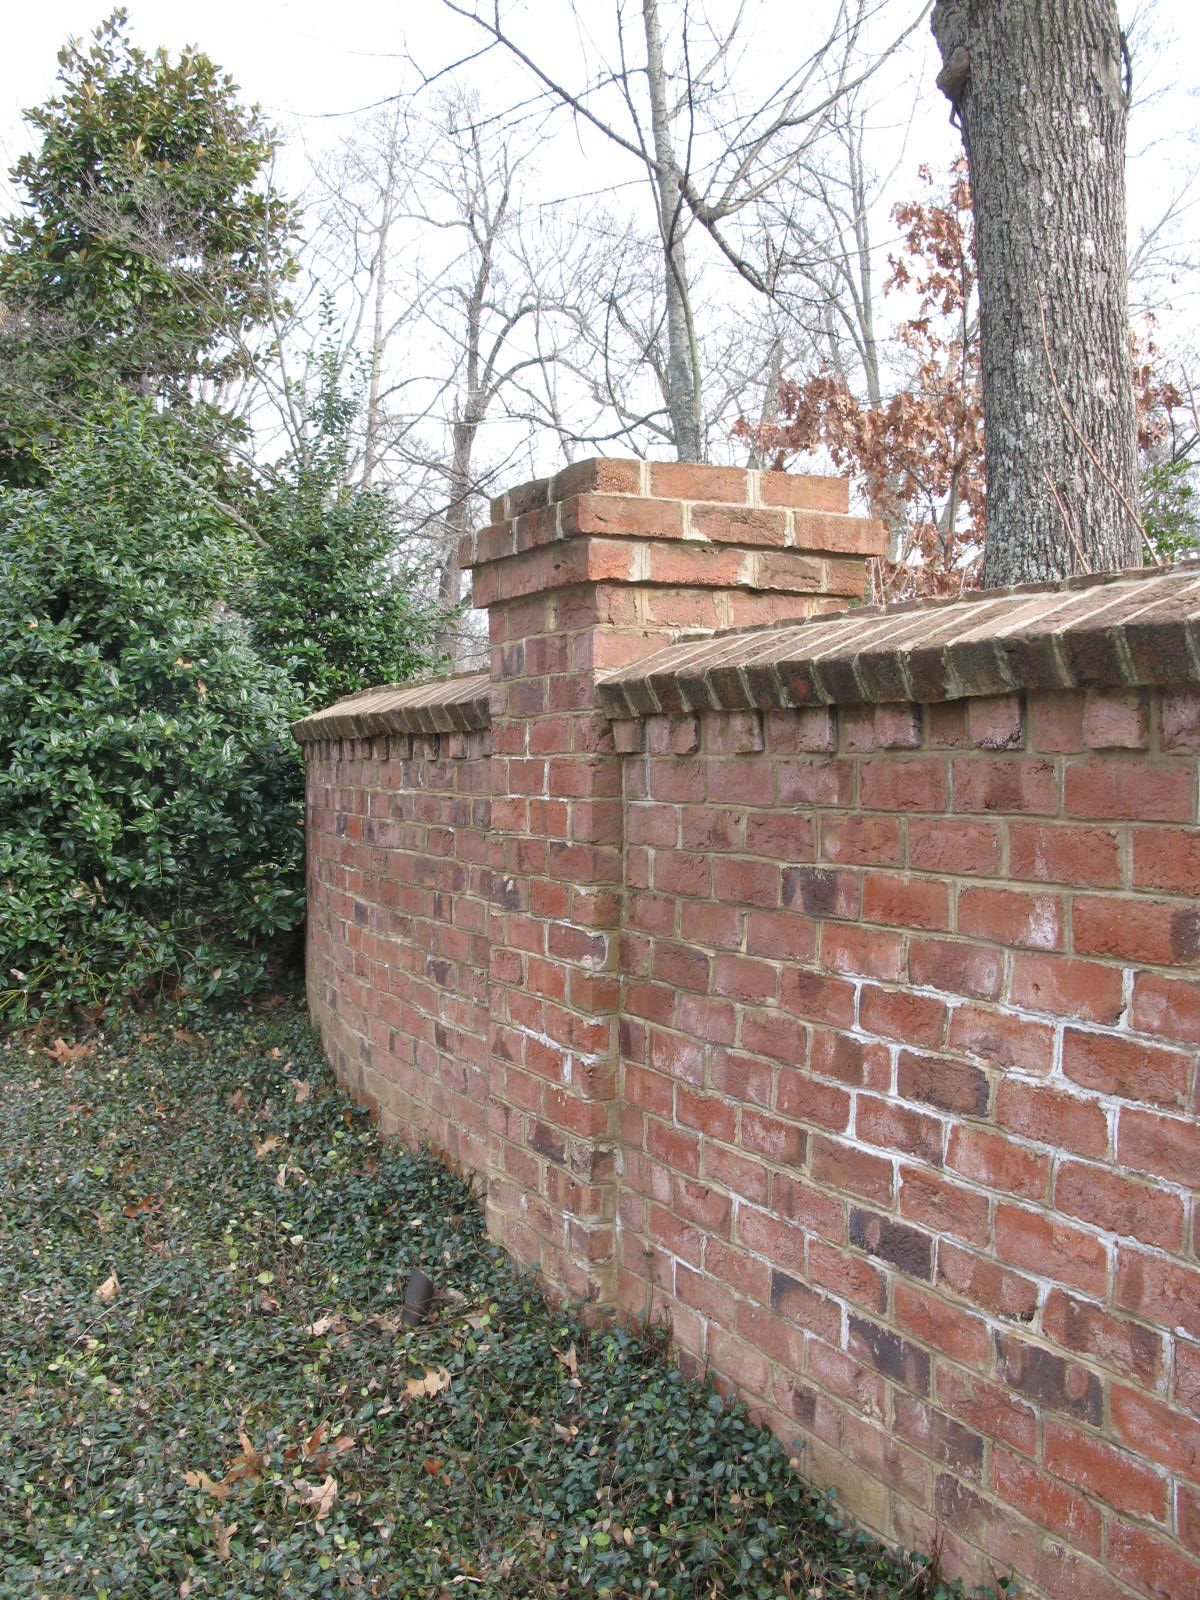 walls and fences as a design element | bricks, walls and brick fence